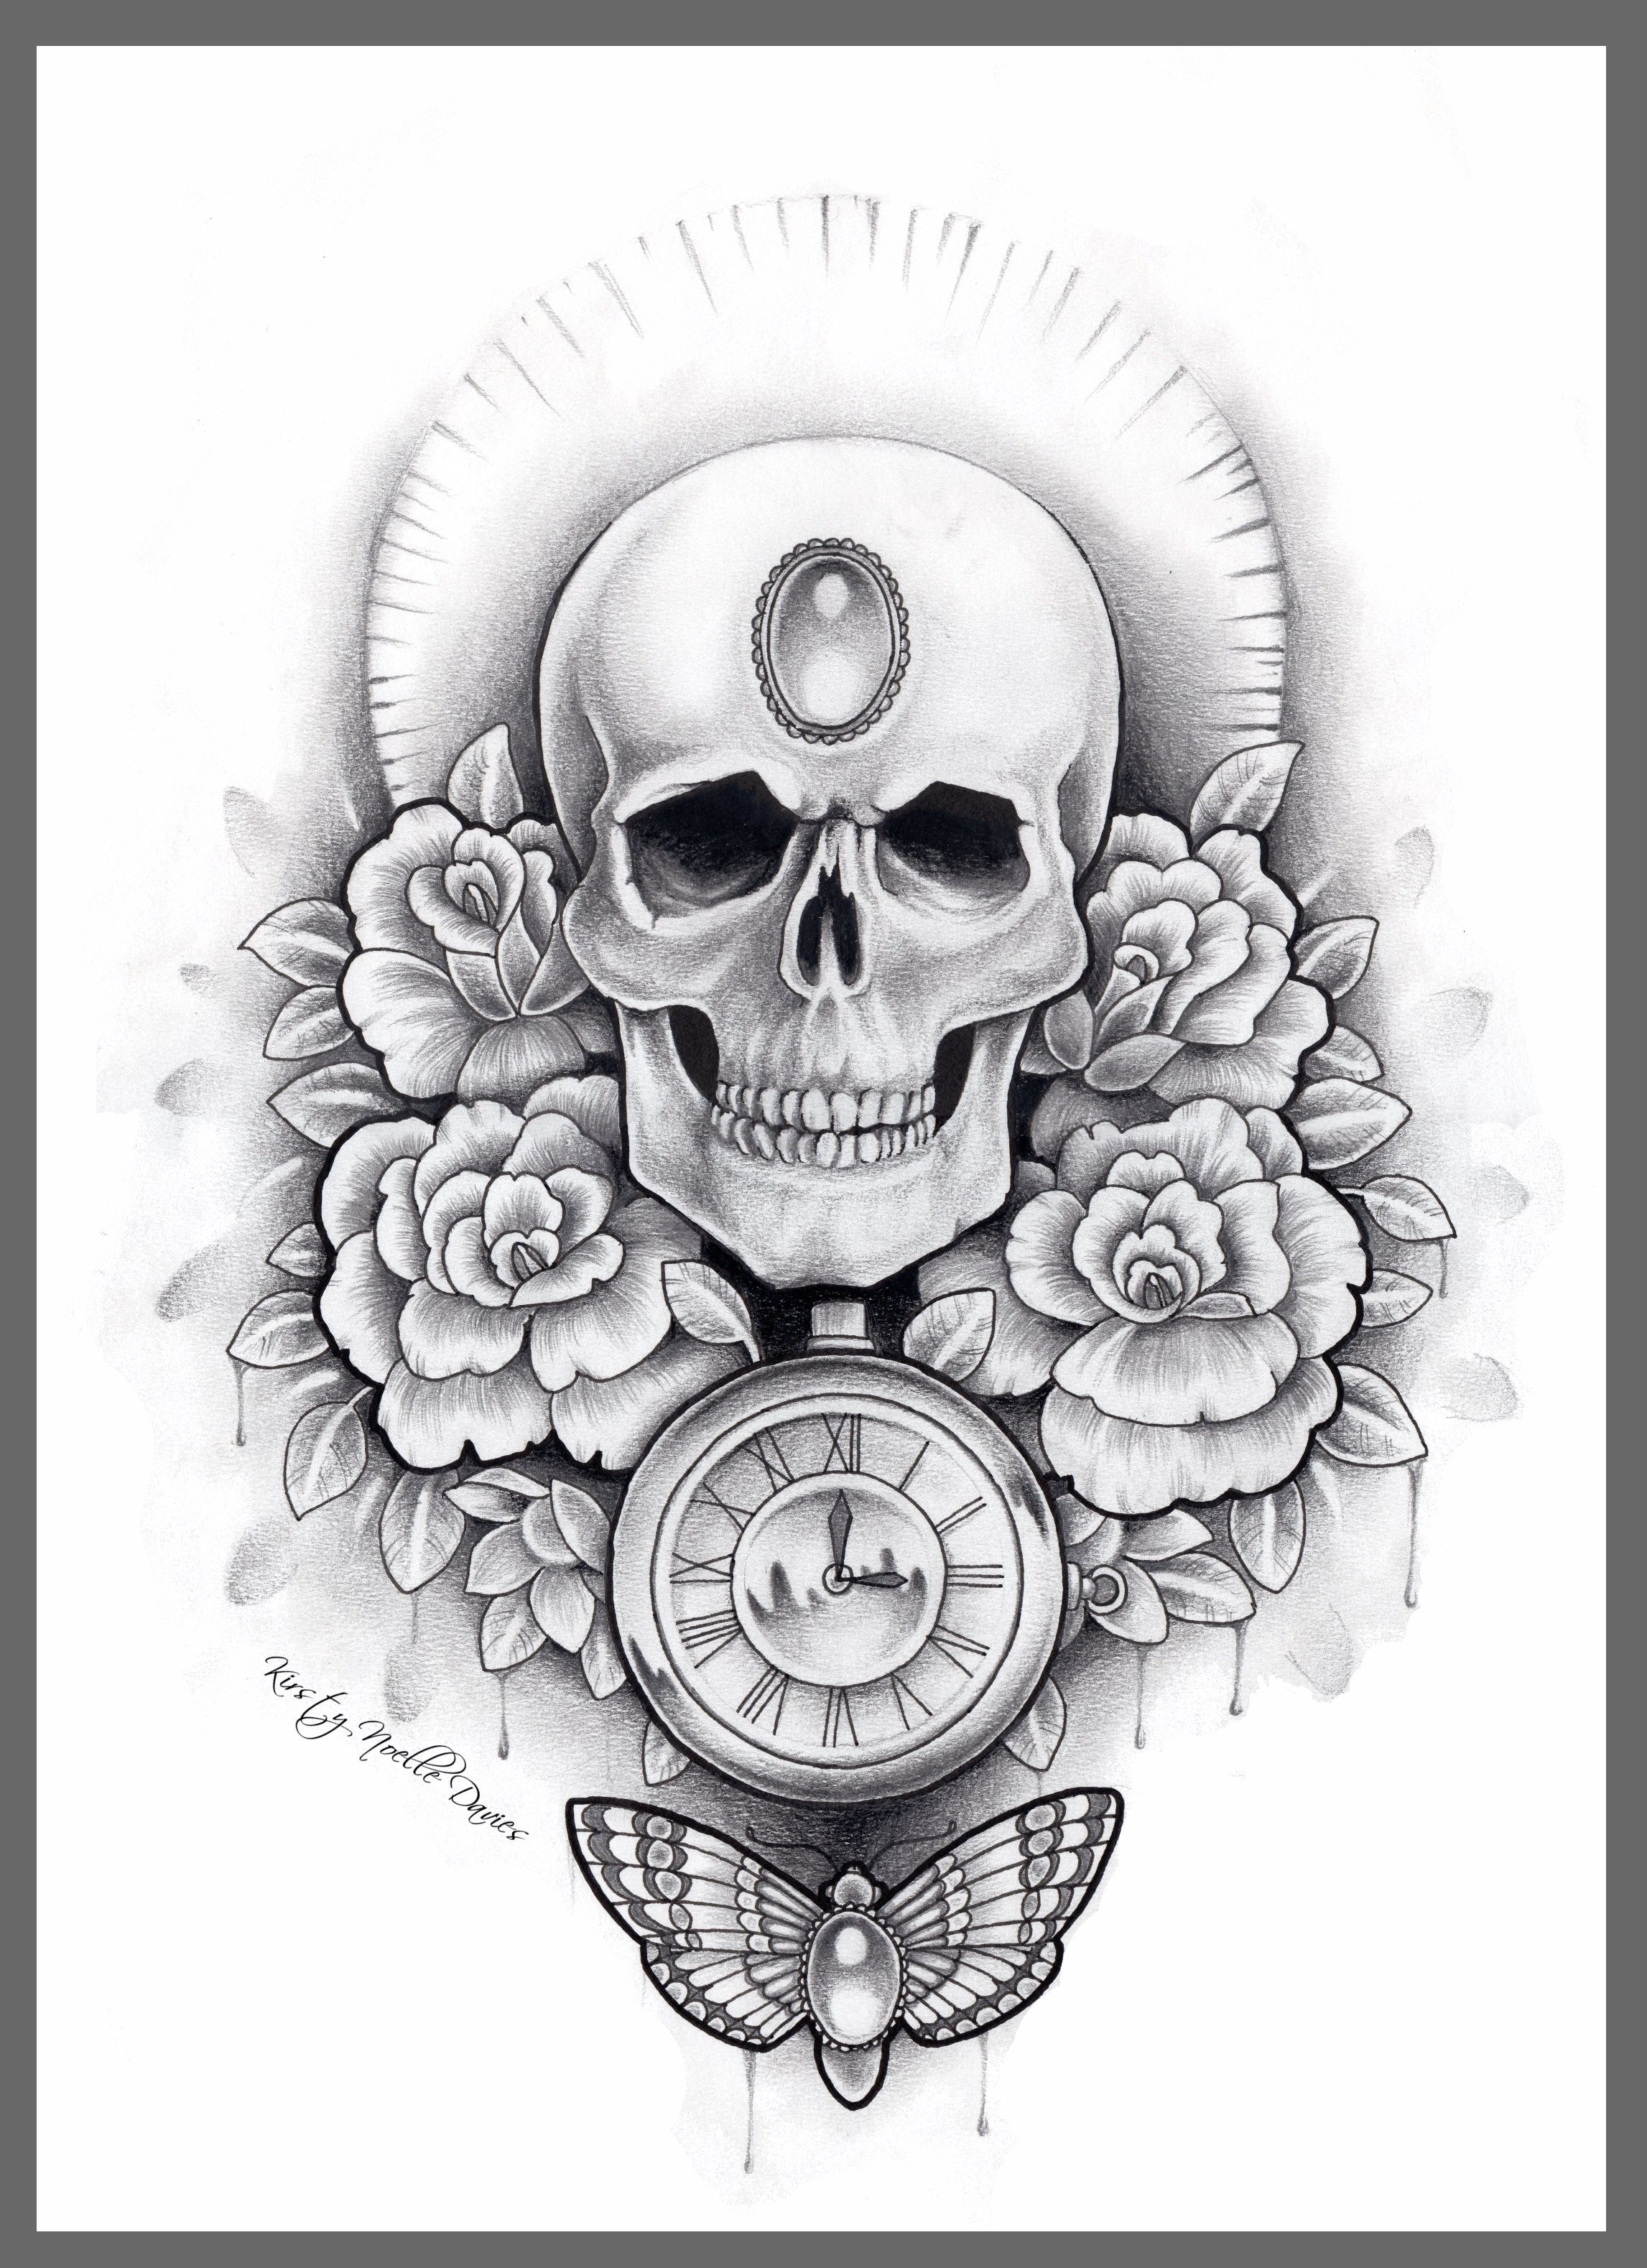 Skull, Stopwatch and Moth tattoo design flash by Kirsty